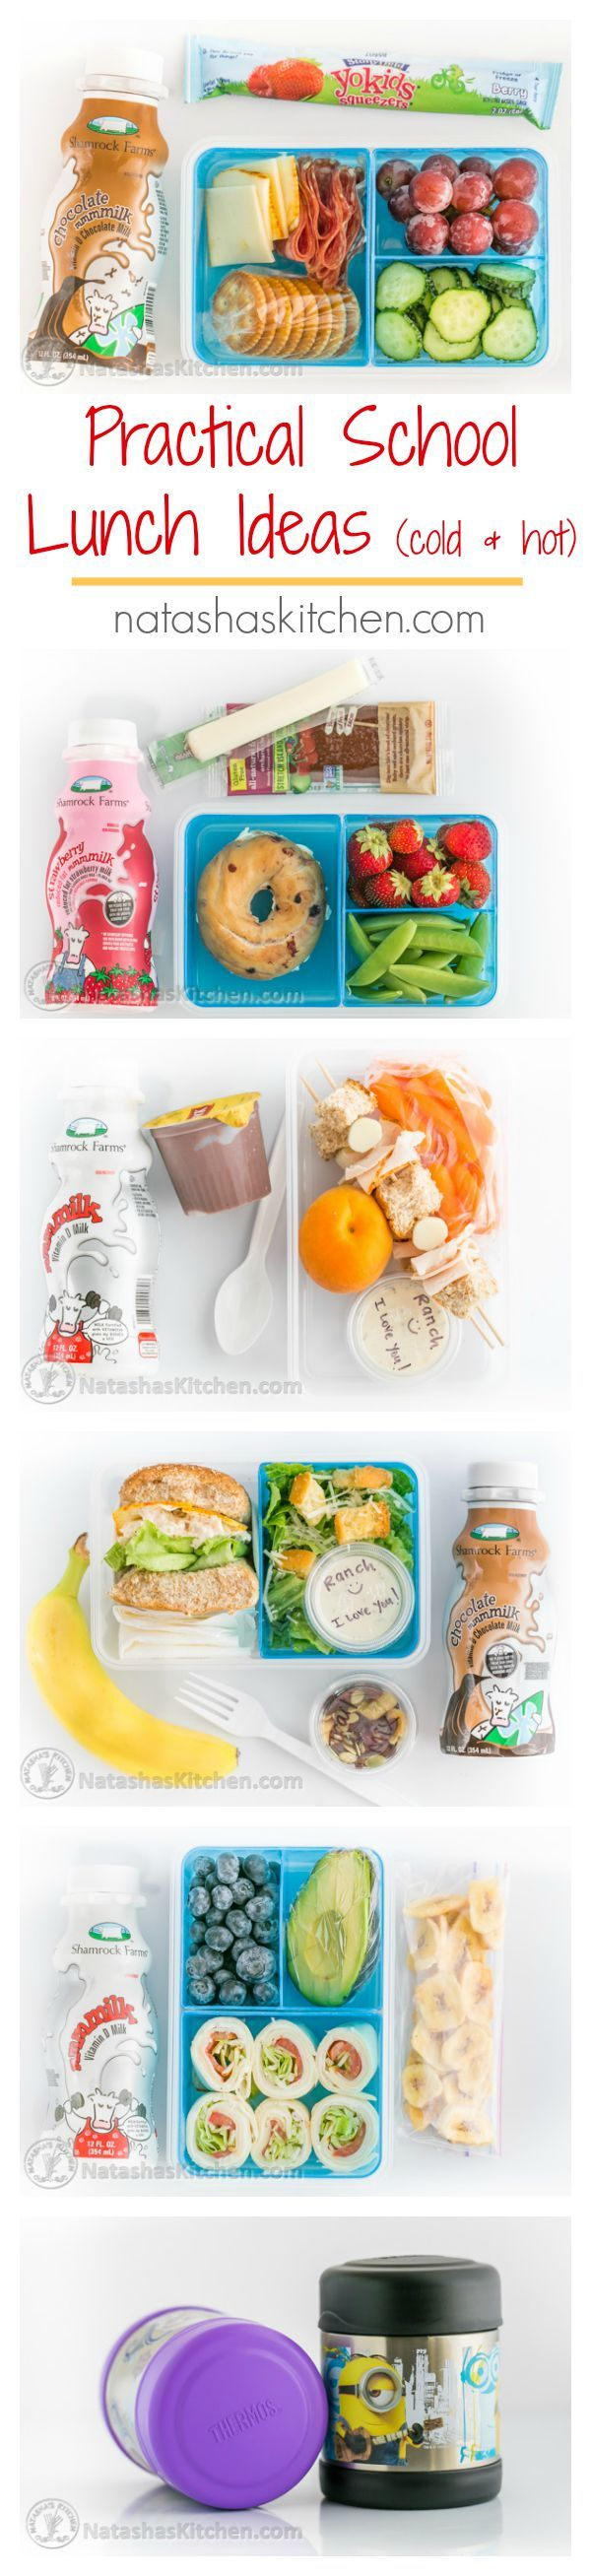 Lunch ideas that you have time to put together - they're healthy and tasty, too :-)